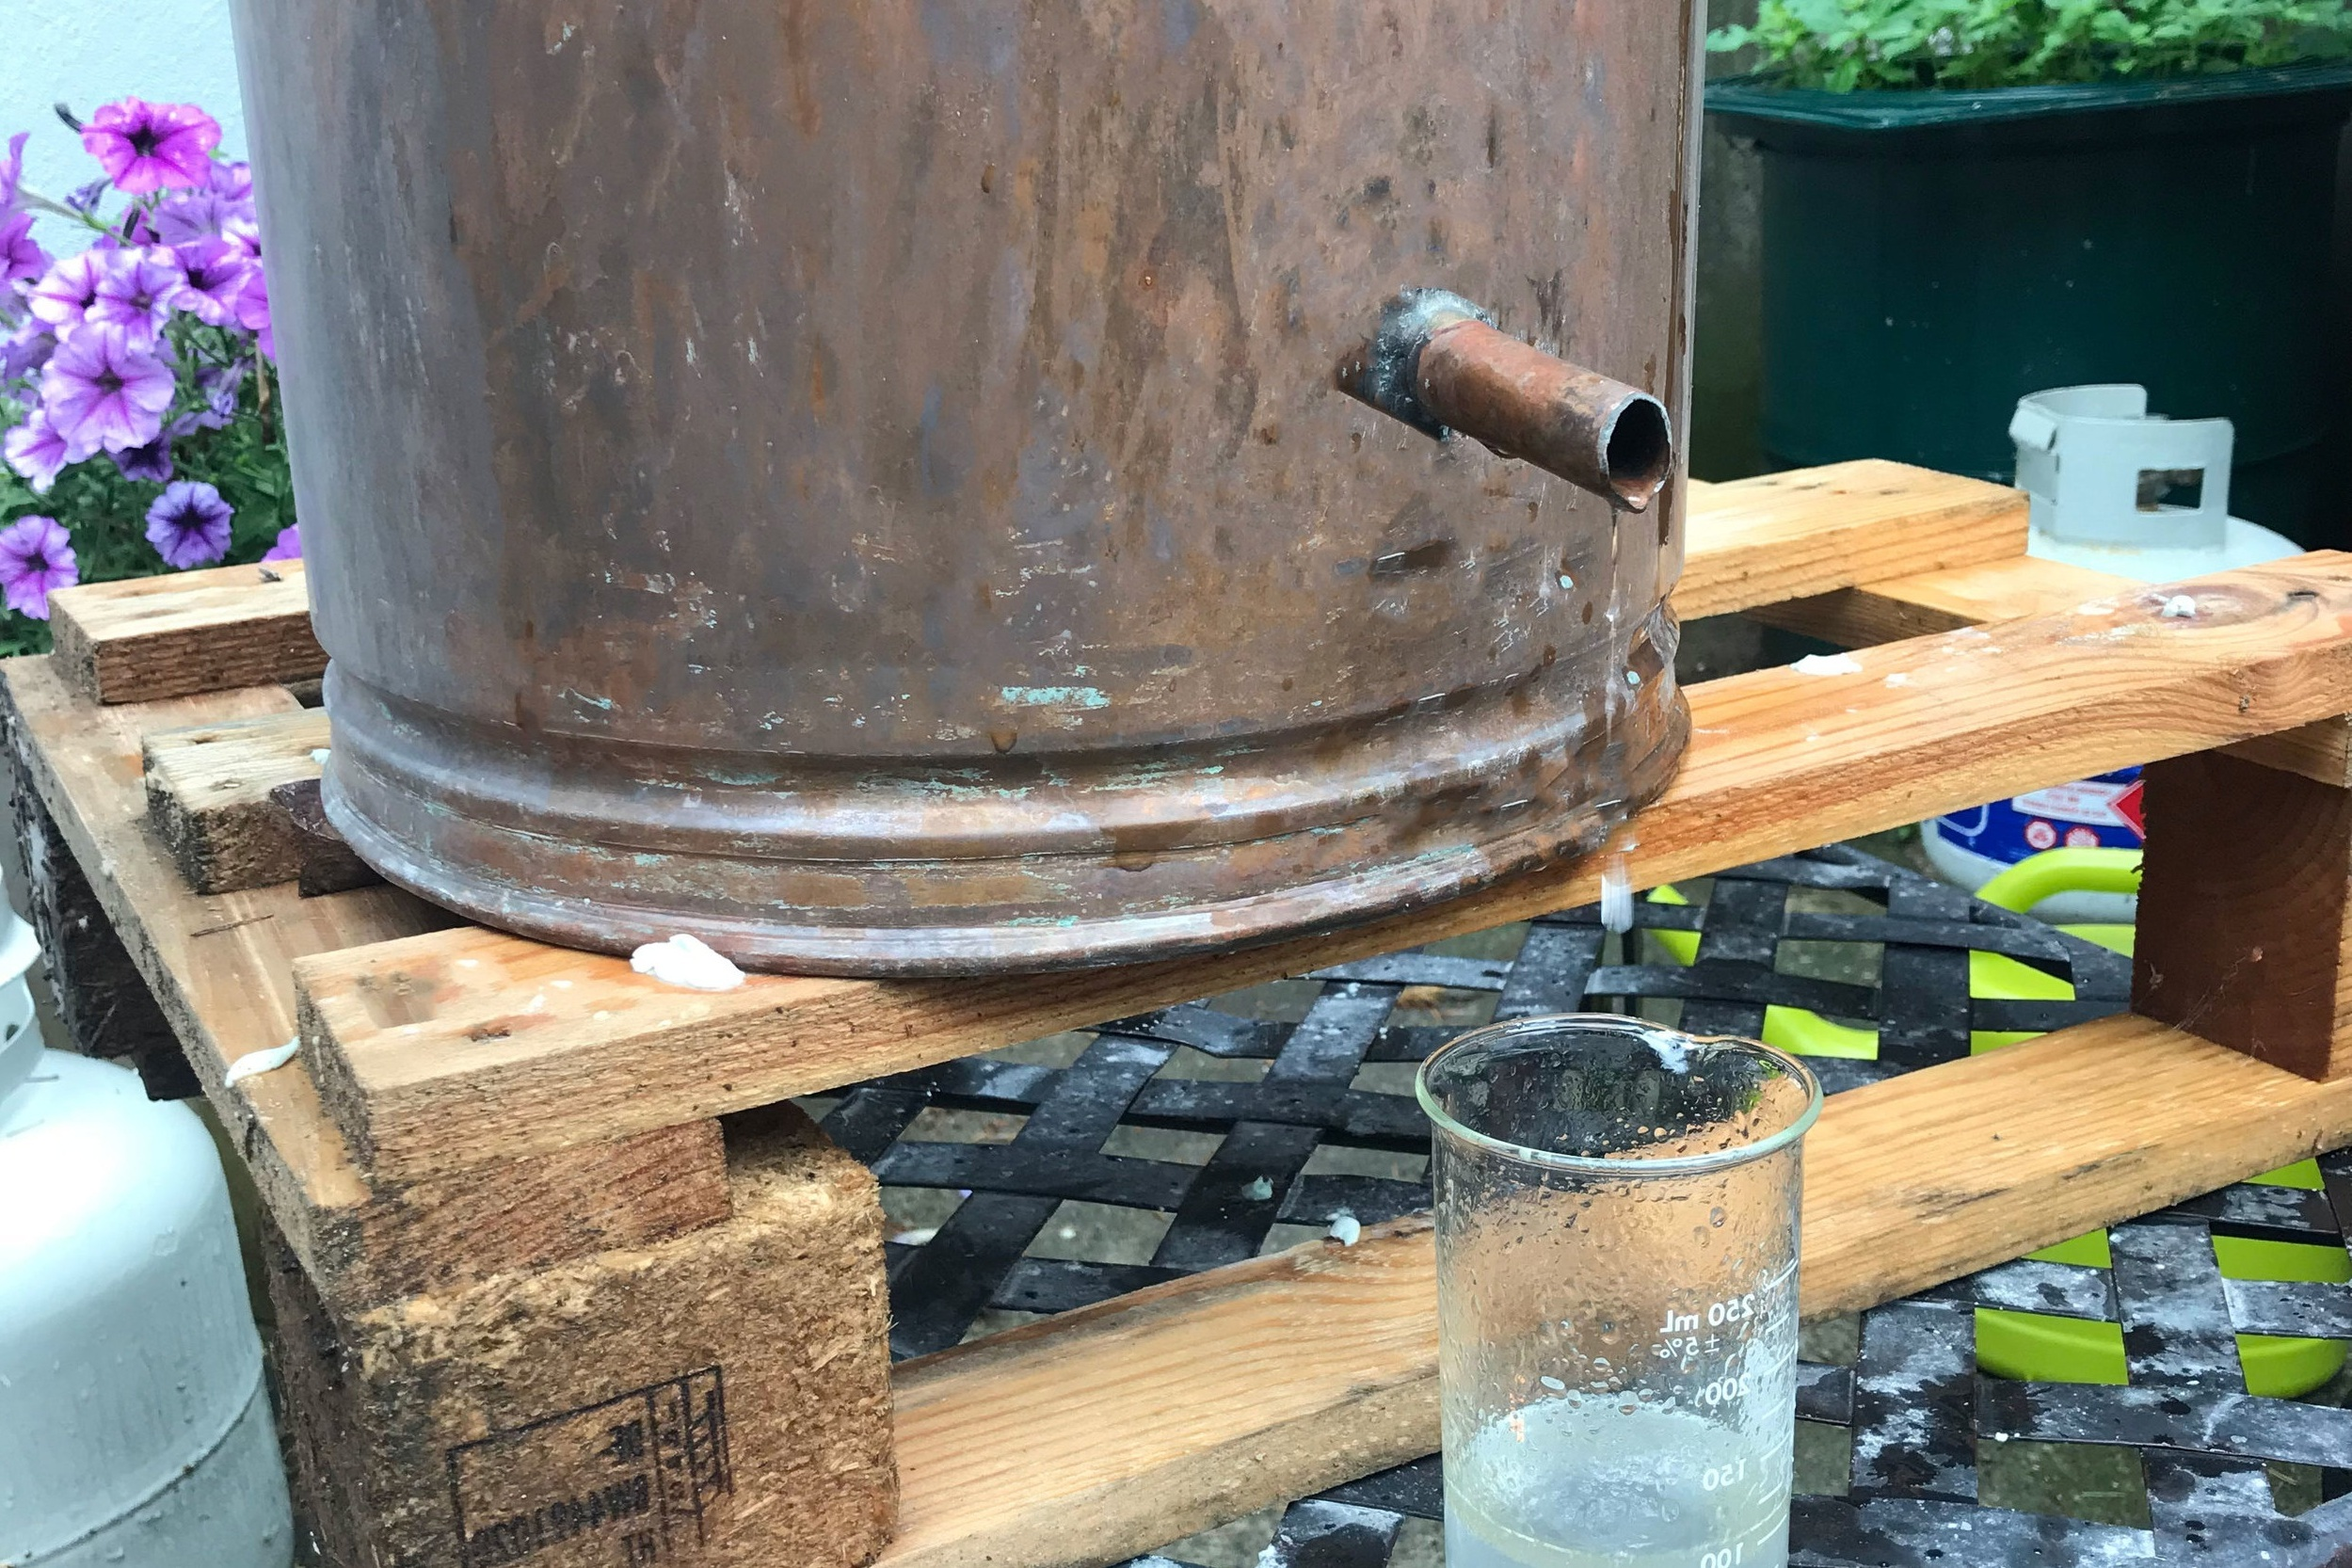 Distilling - This summer 2018 we did our first distillation for lavender essential oil!